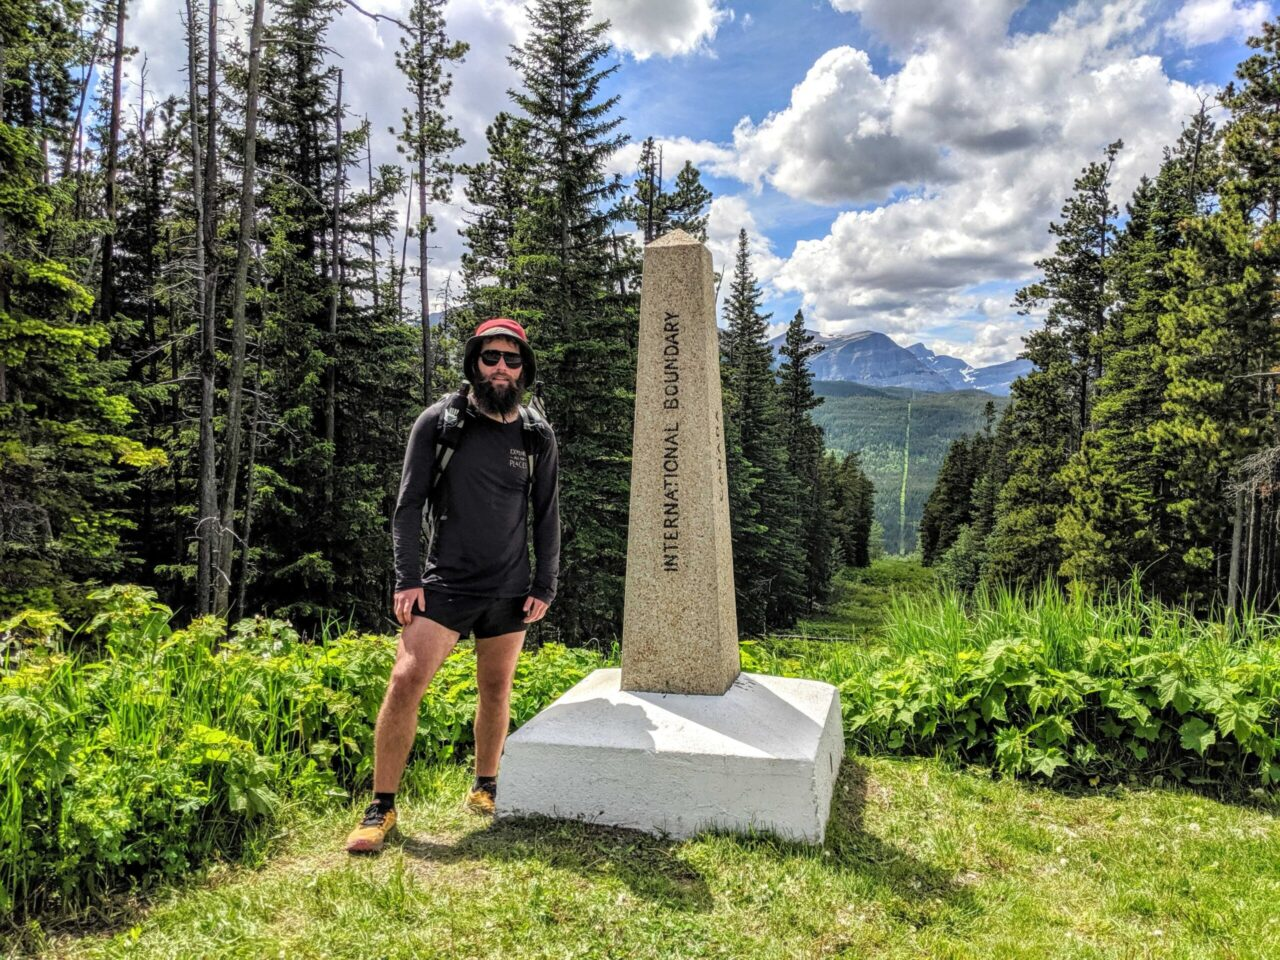 A thru-hiker standing next to the northern terminus of the Continental Divide Trail.